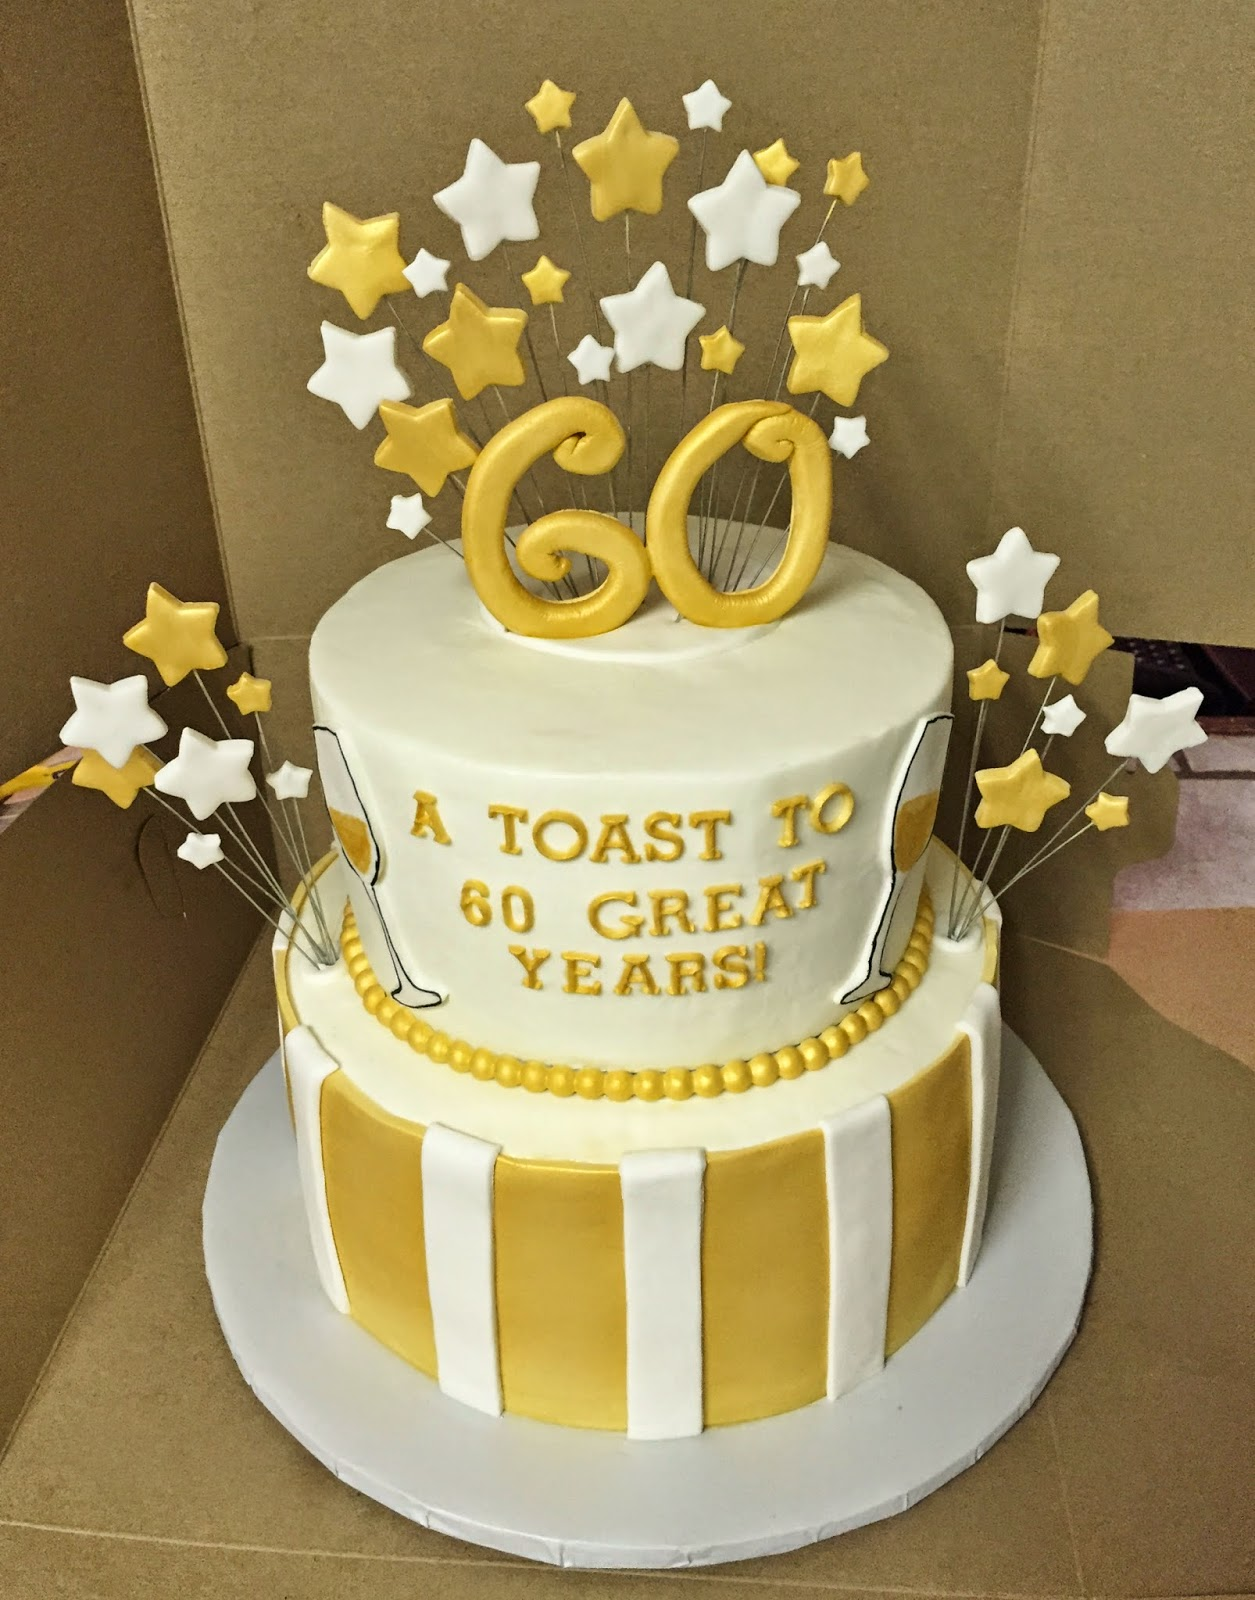 Cakes by Mindy: Gold and White 60th Birthday Cake 8